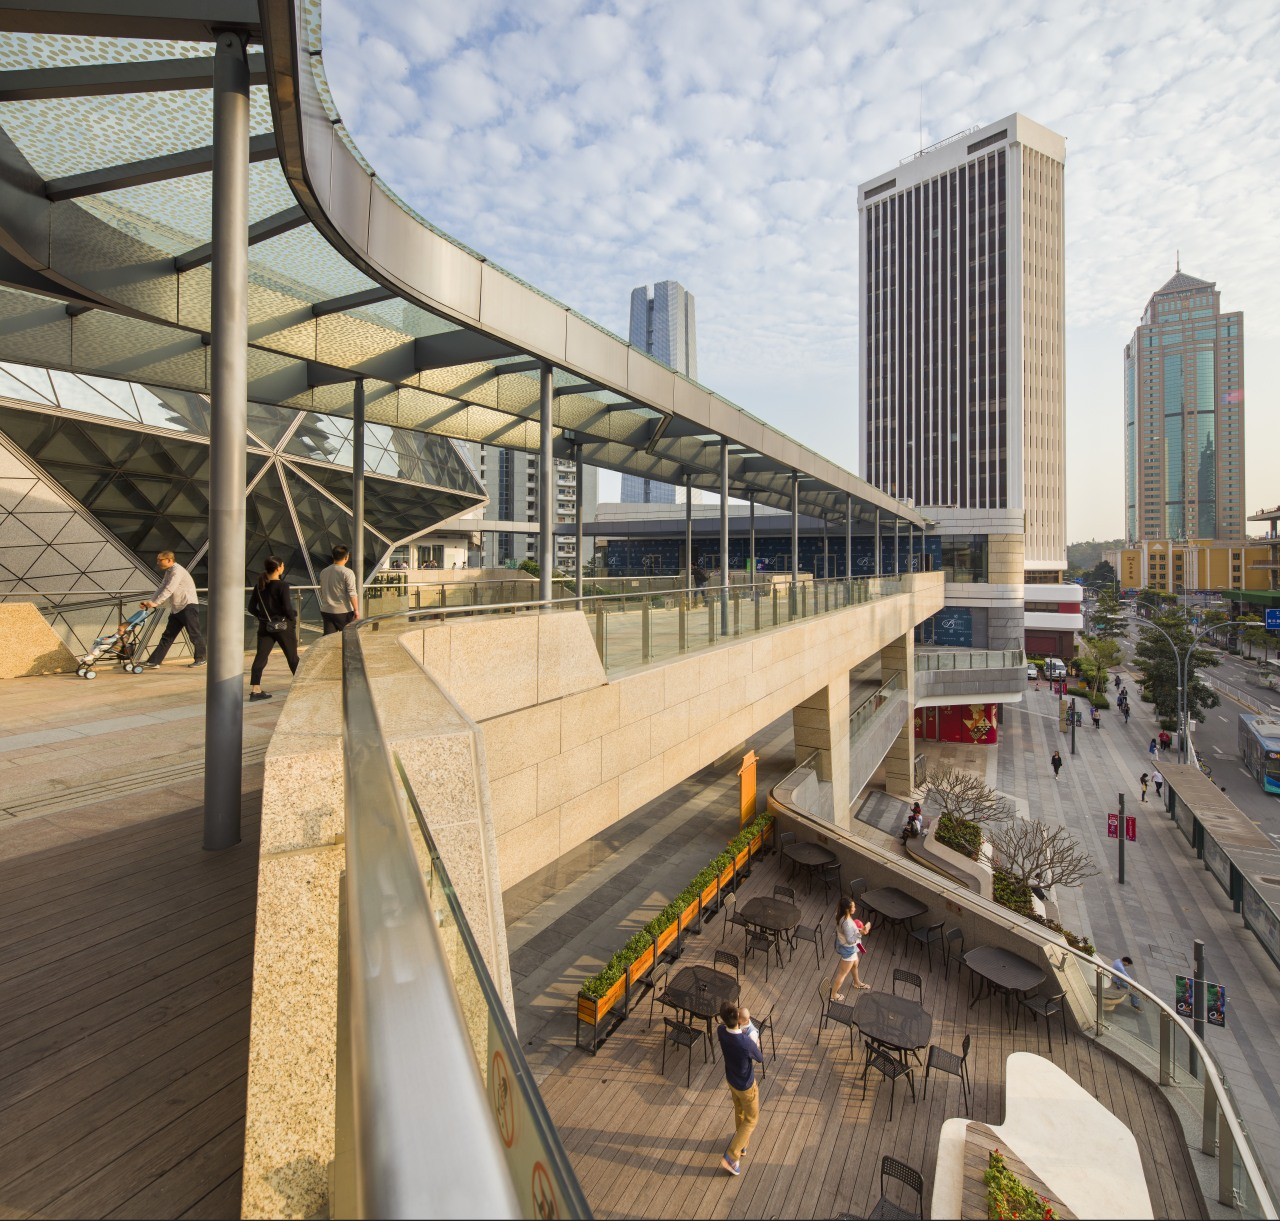 Broad terraces and large balconies give Shekou Gateway architecture, building, city, metropolis, metropolitan area, mixed use, skyway, structure, urban area, gray